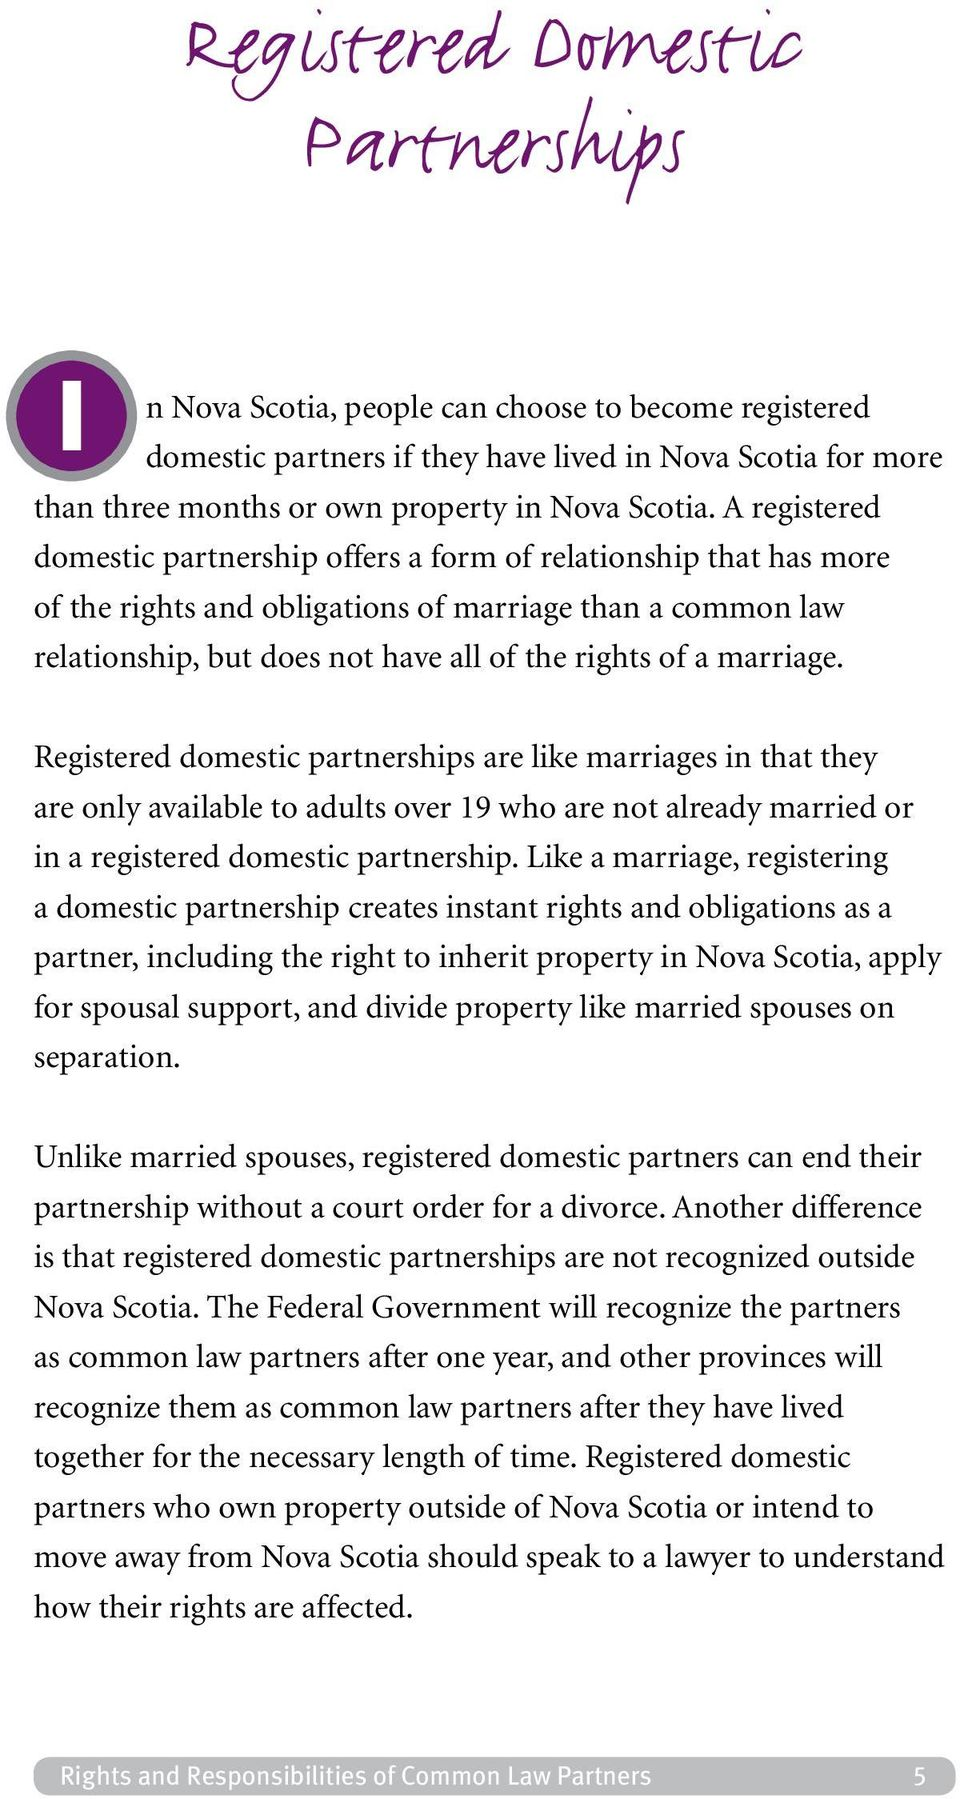 marriage. Registered domestic partnerships are like marriages in that they are only available to adults over 19 who are not already married or in a registered domestic partnership.